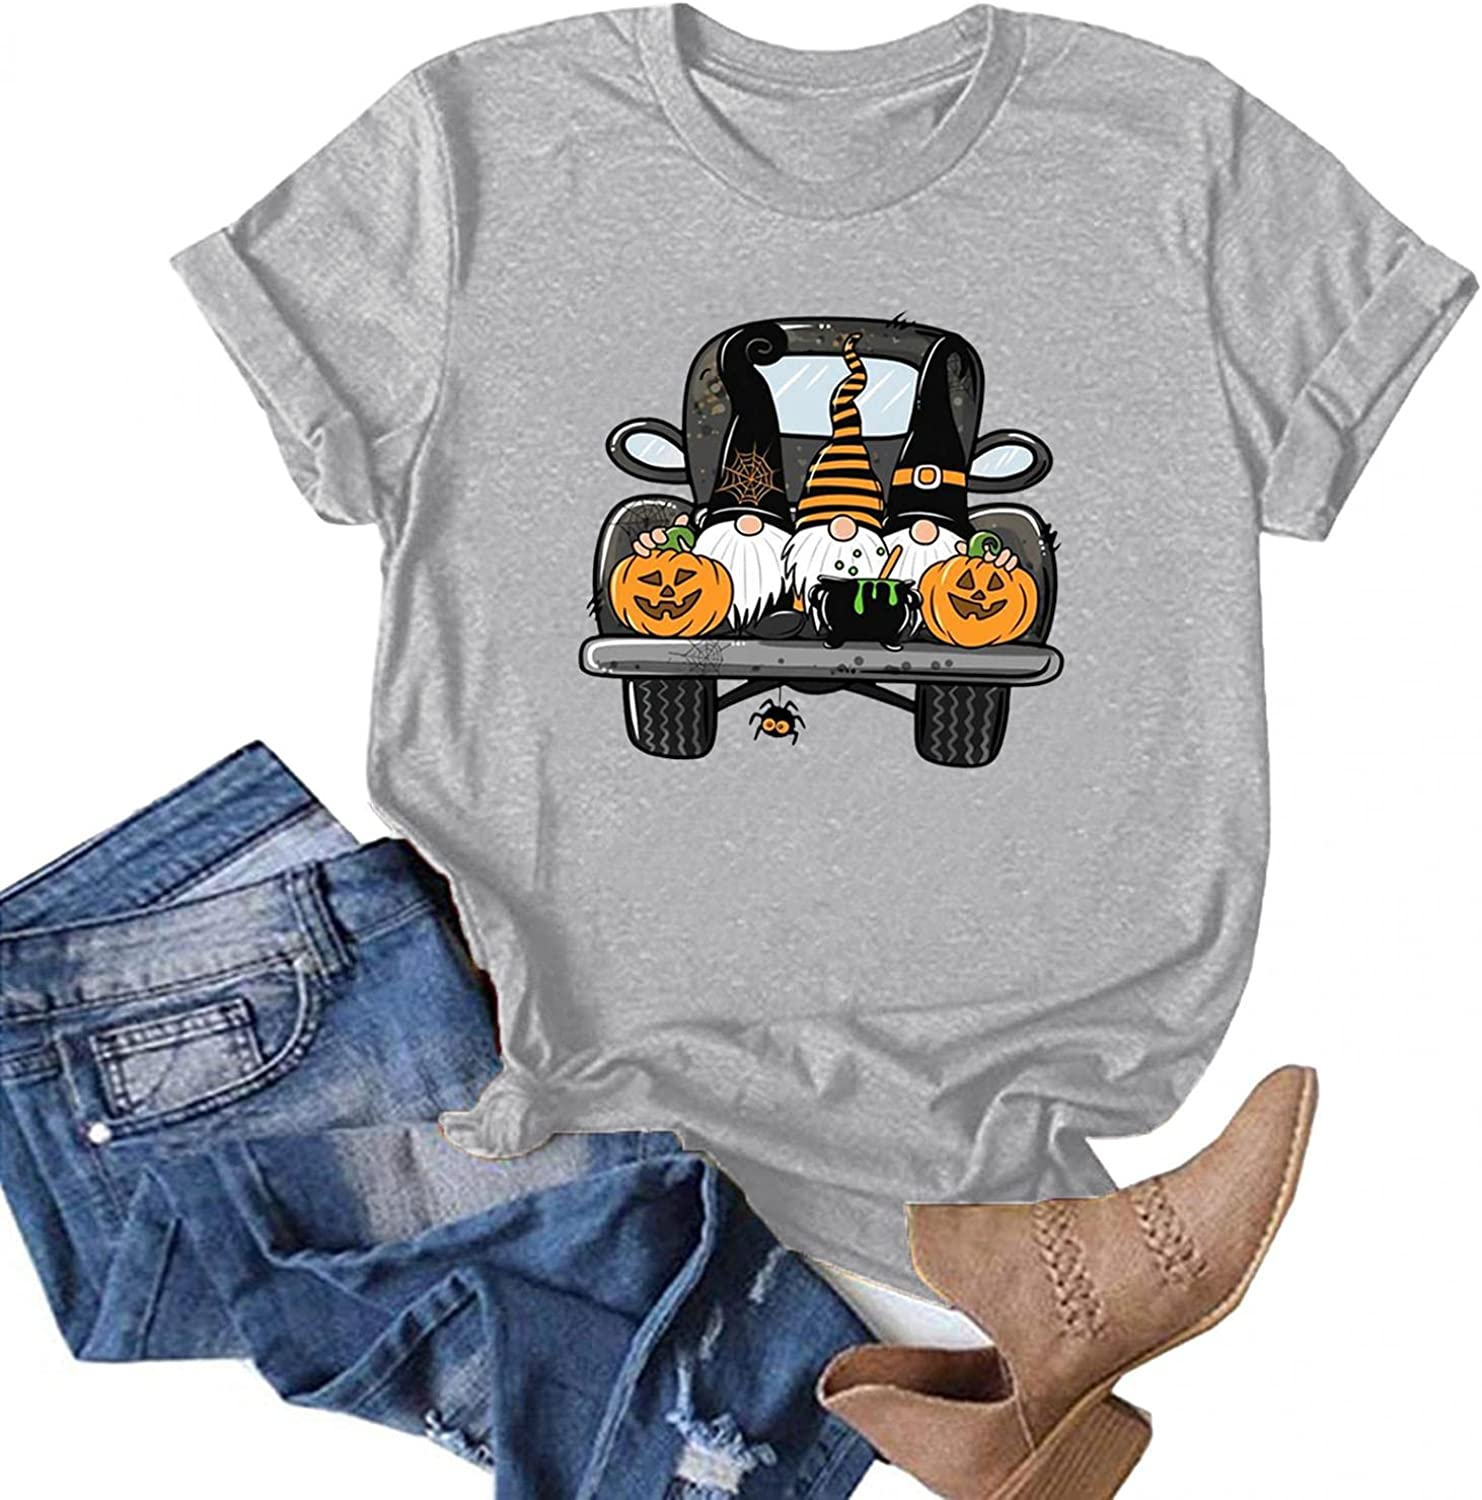 AODONG Short Sleeve Tops for Women, Womens Casual Summer Loose Fit Crewneck Graphic T Shirts Blouses Tops Tunics Tees